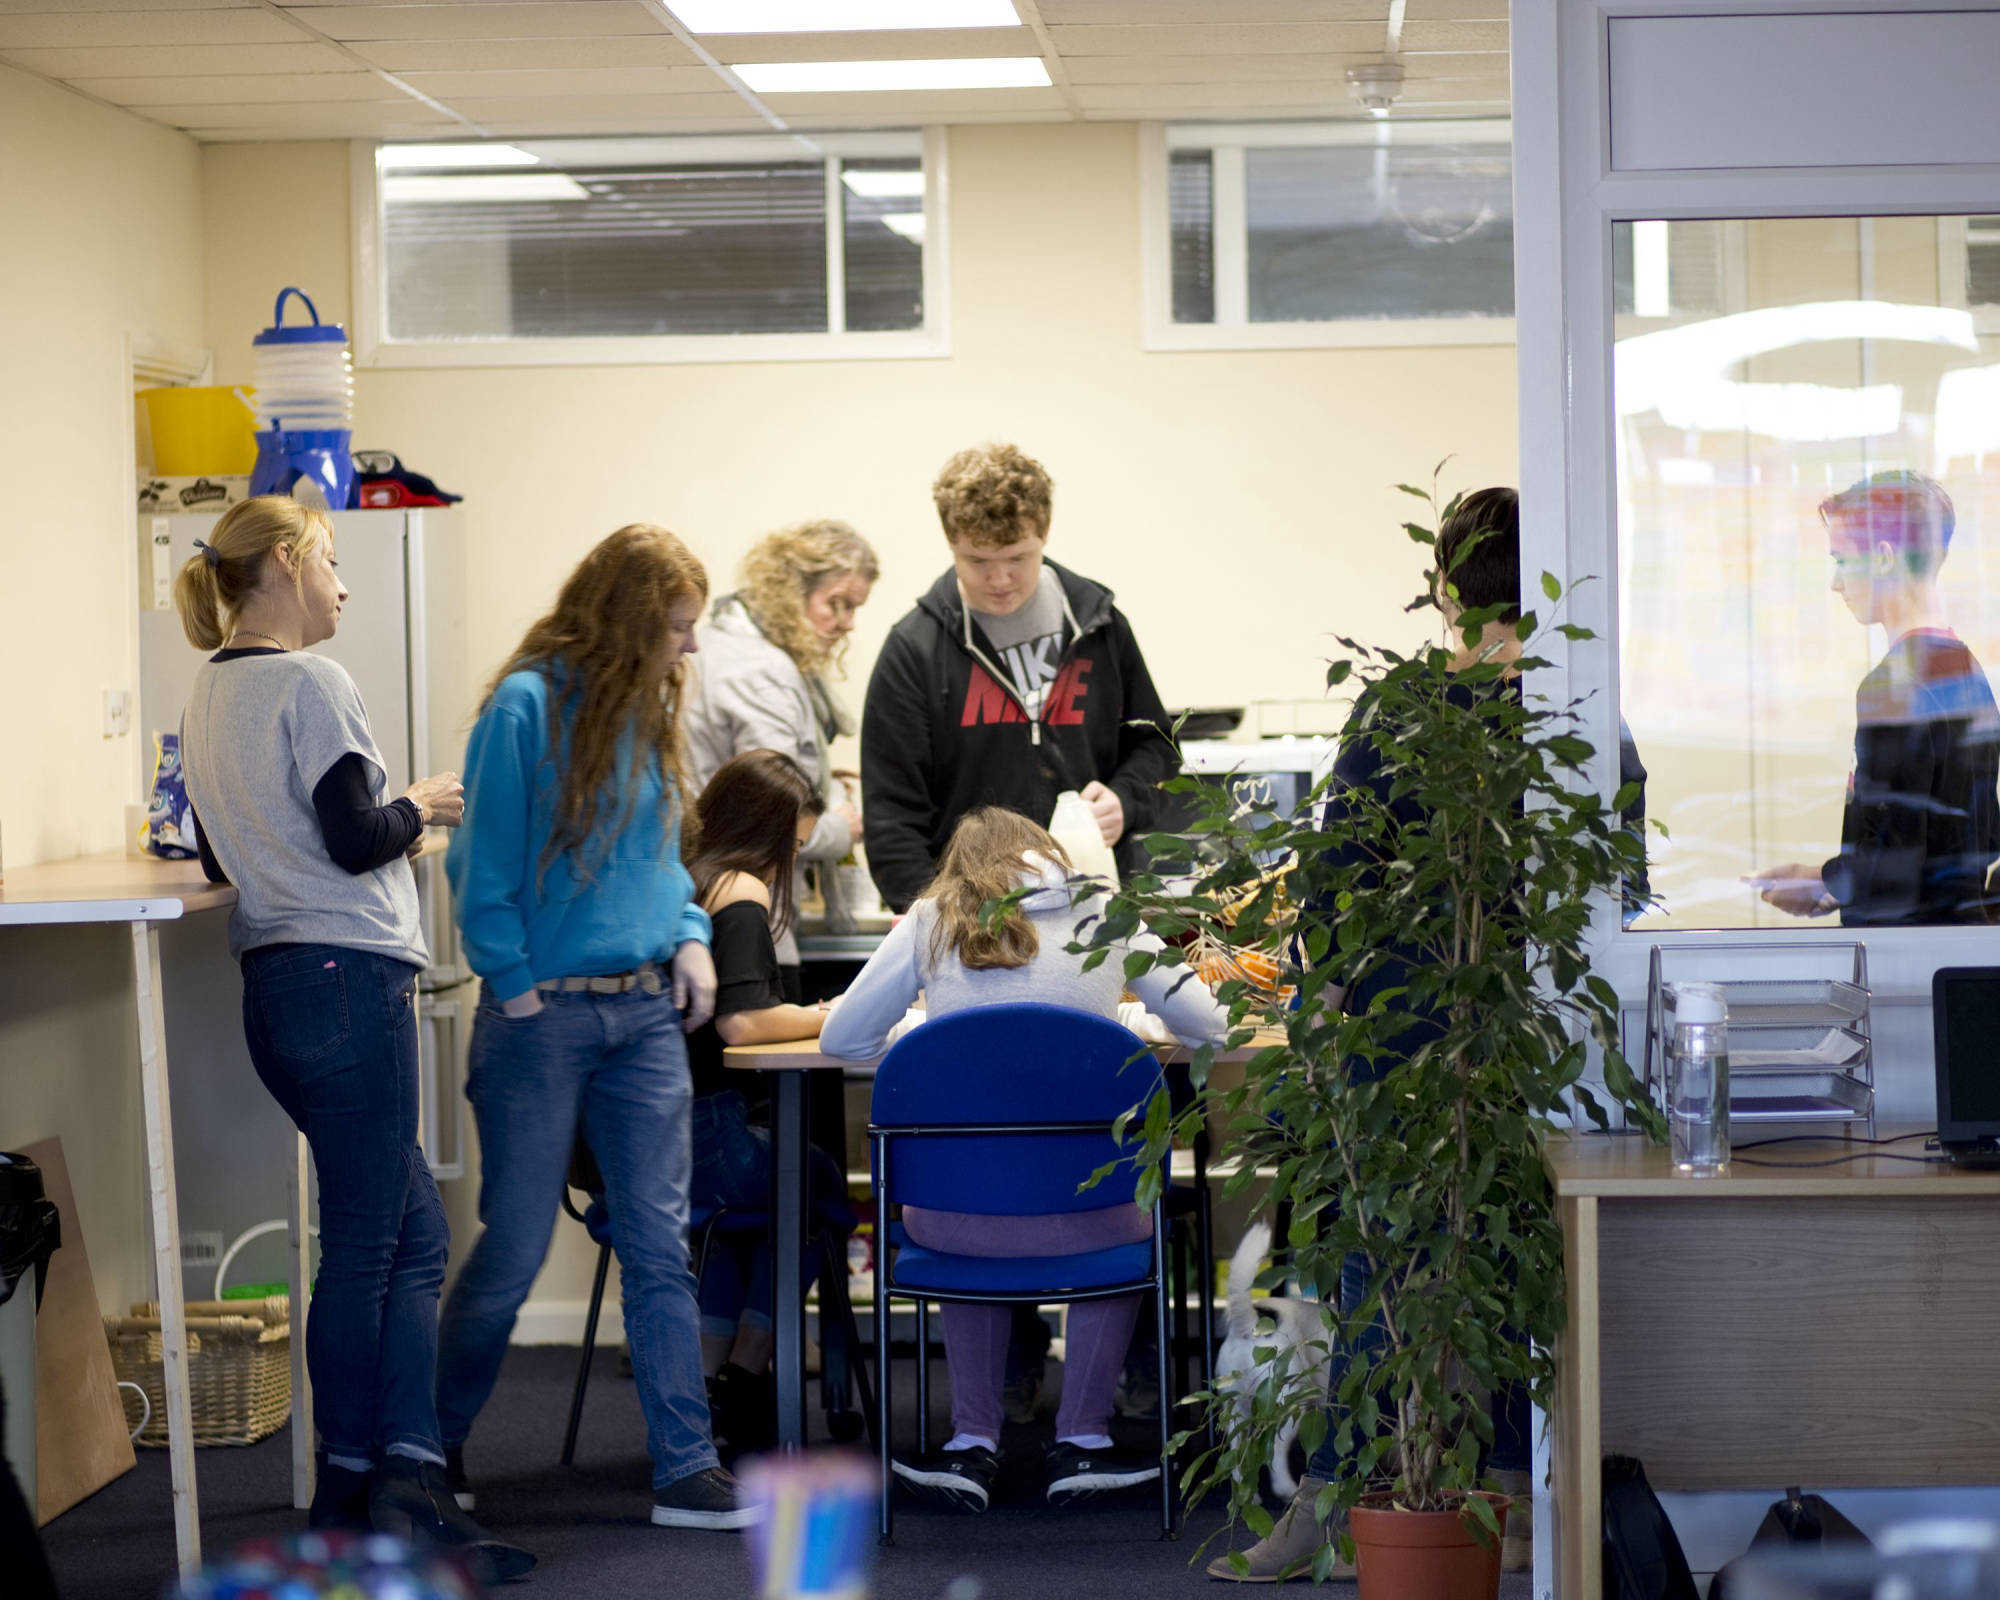 Pupils in common room